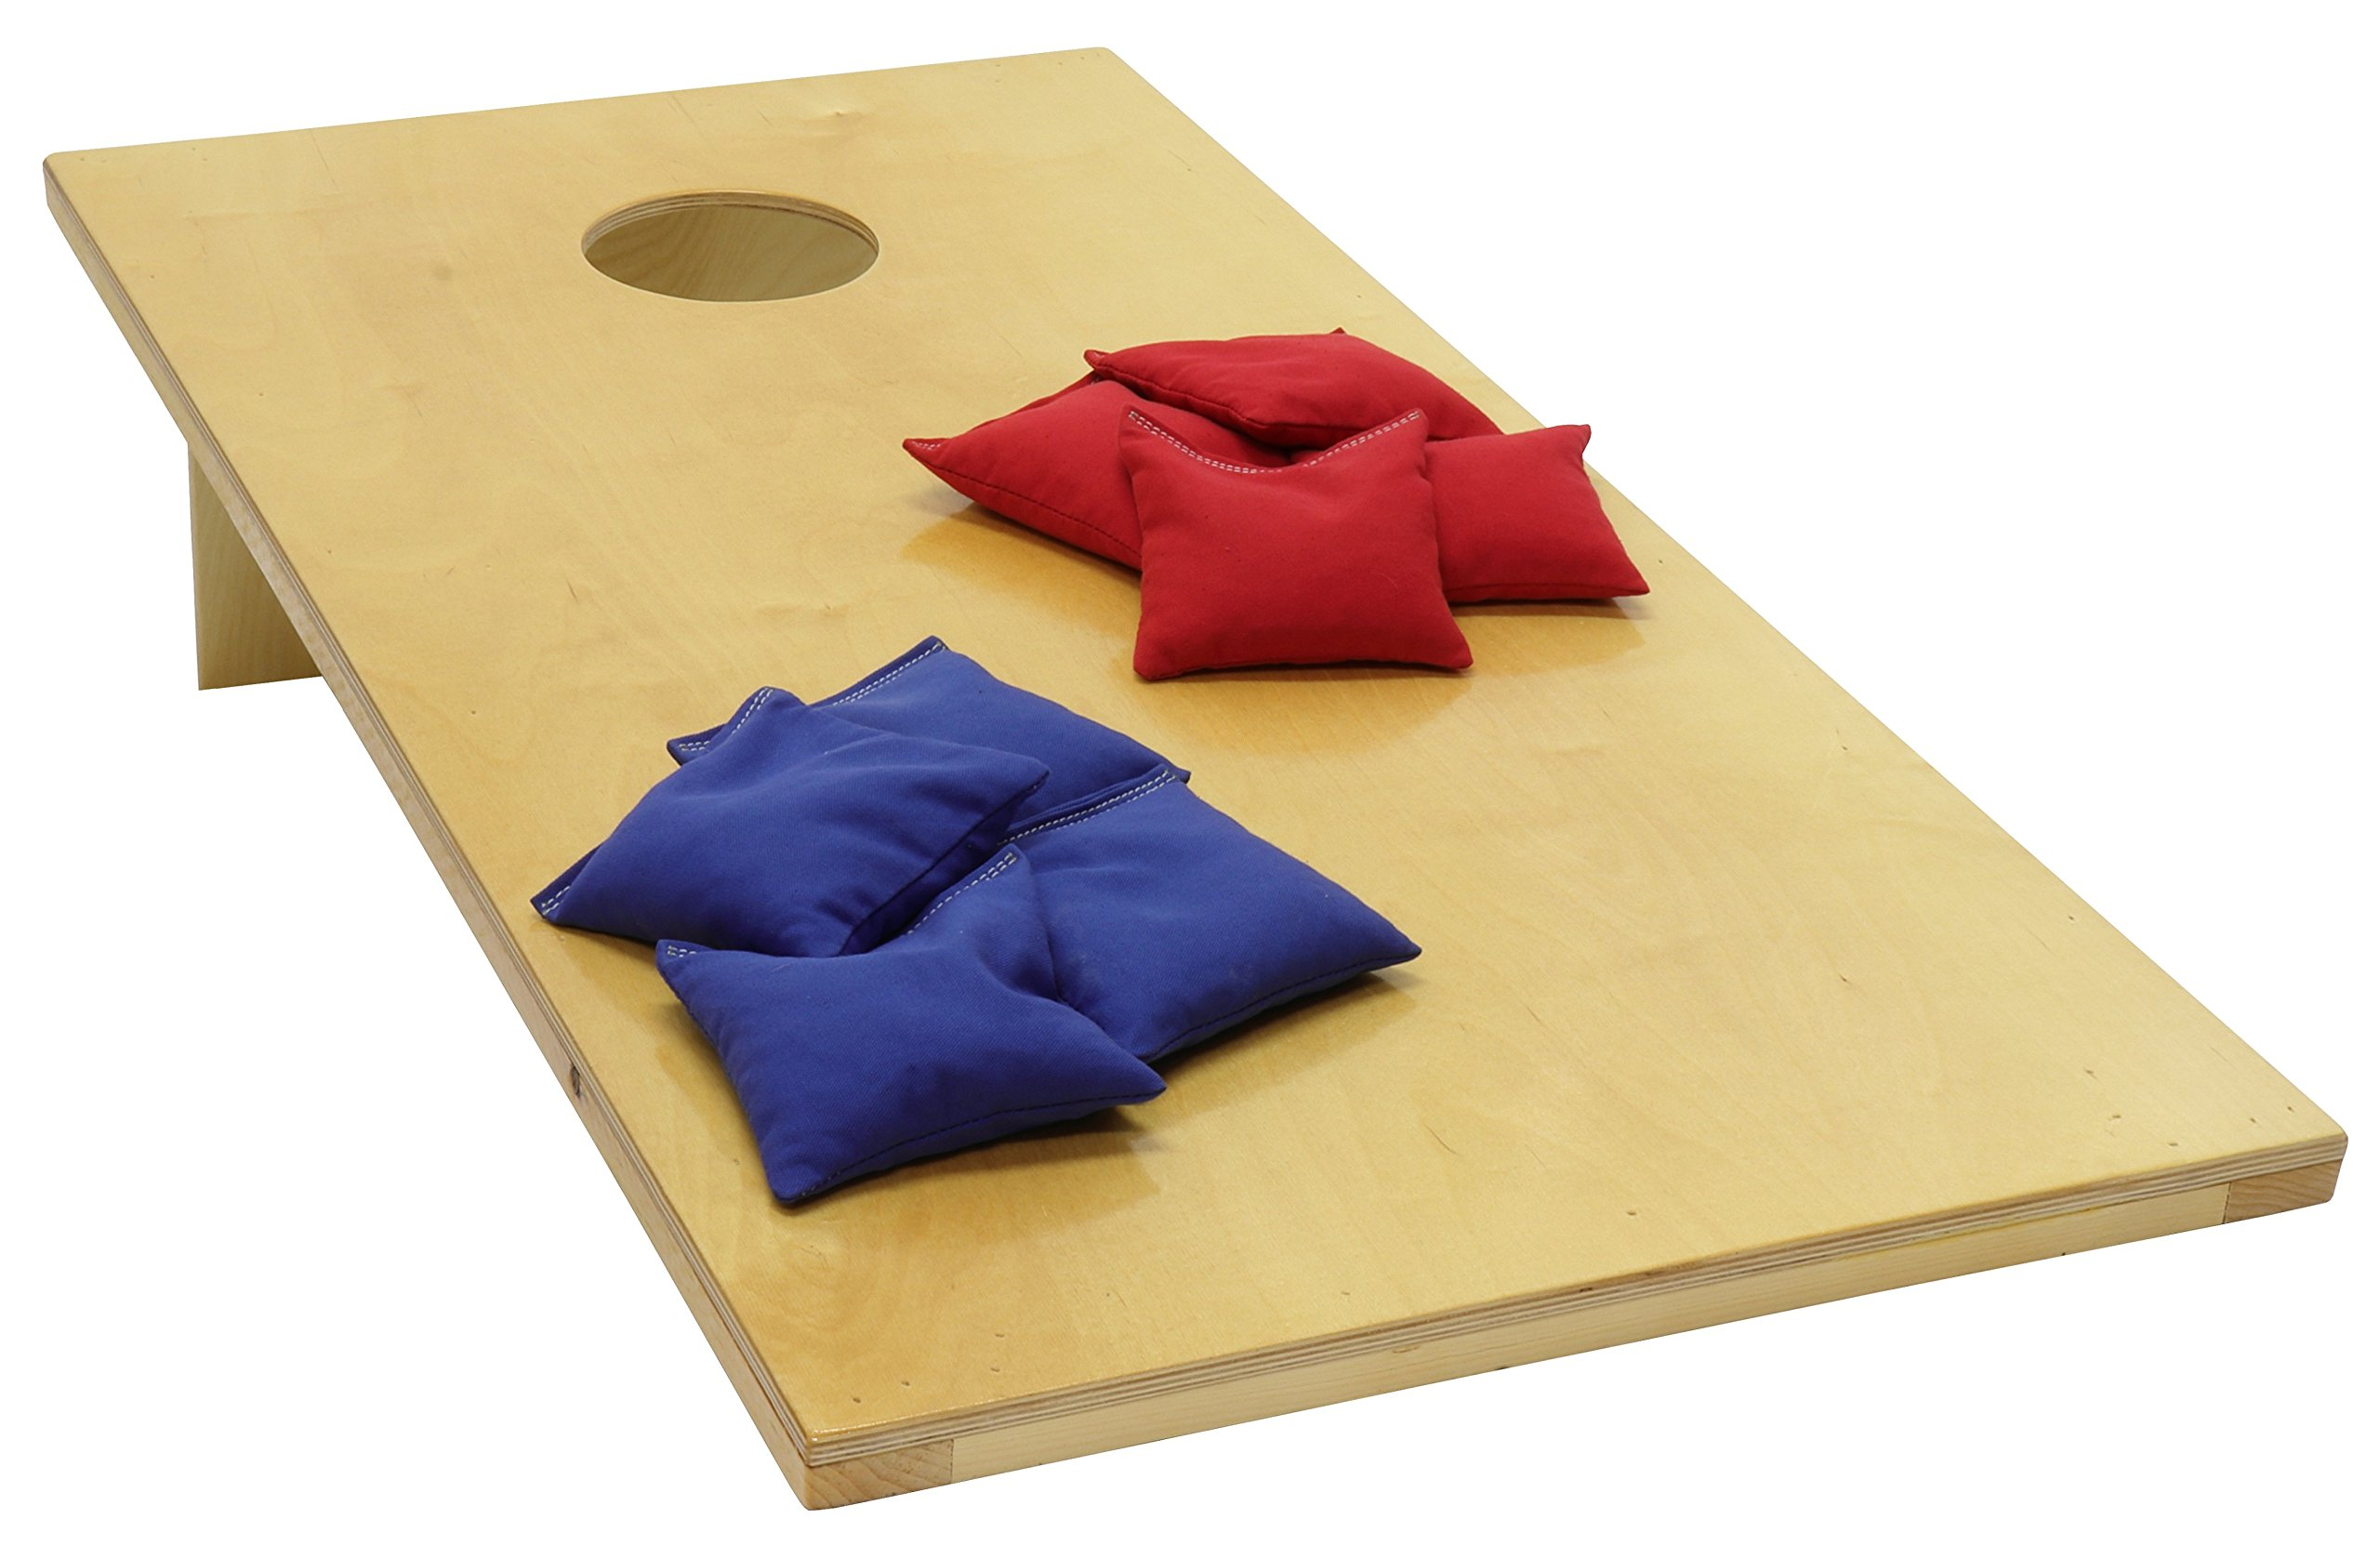 Pennsylvania Woodworks Cornhole Game Set :: 2 Solid Wood Corn Toss Boards + 8 Corn Filled Bean Bags :: Regulation Size, Weather Resistant Finish, 48'' x 24'' :: Slim, Foldable & Portable